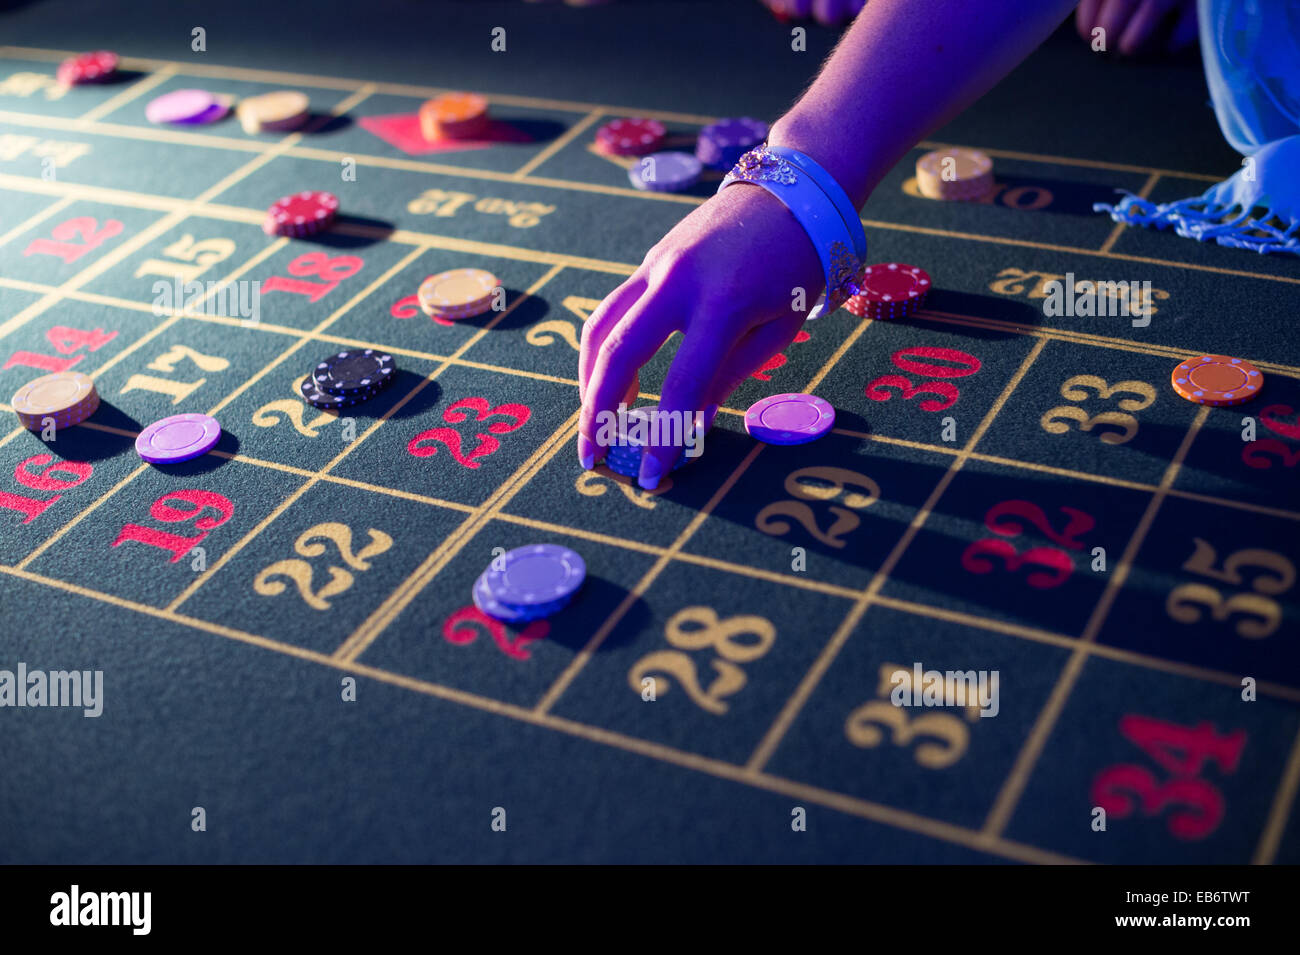 People laying placing bets playing at roulette gambling in a 'casino' at a wedding reception, UK - Stock Image